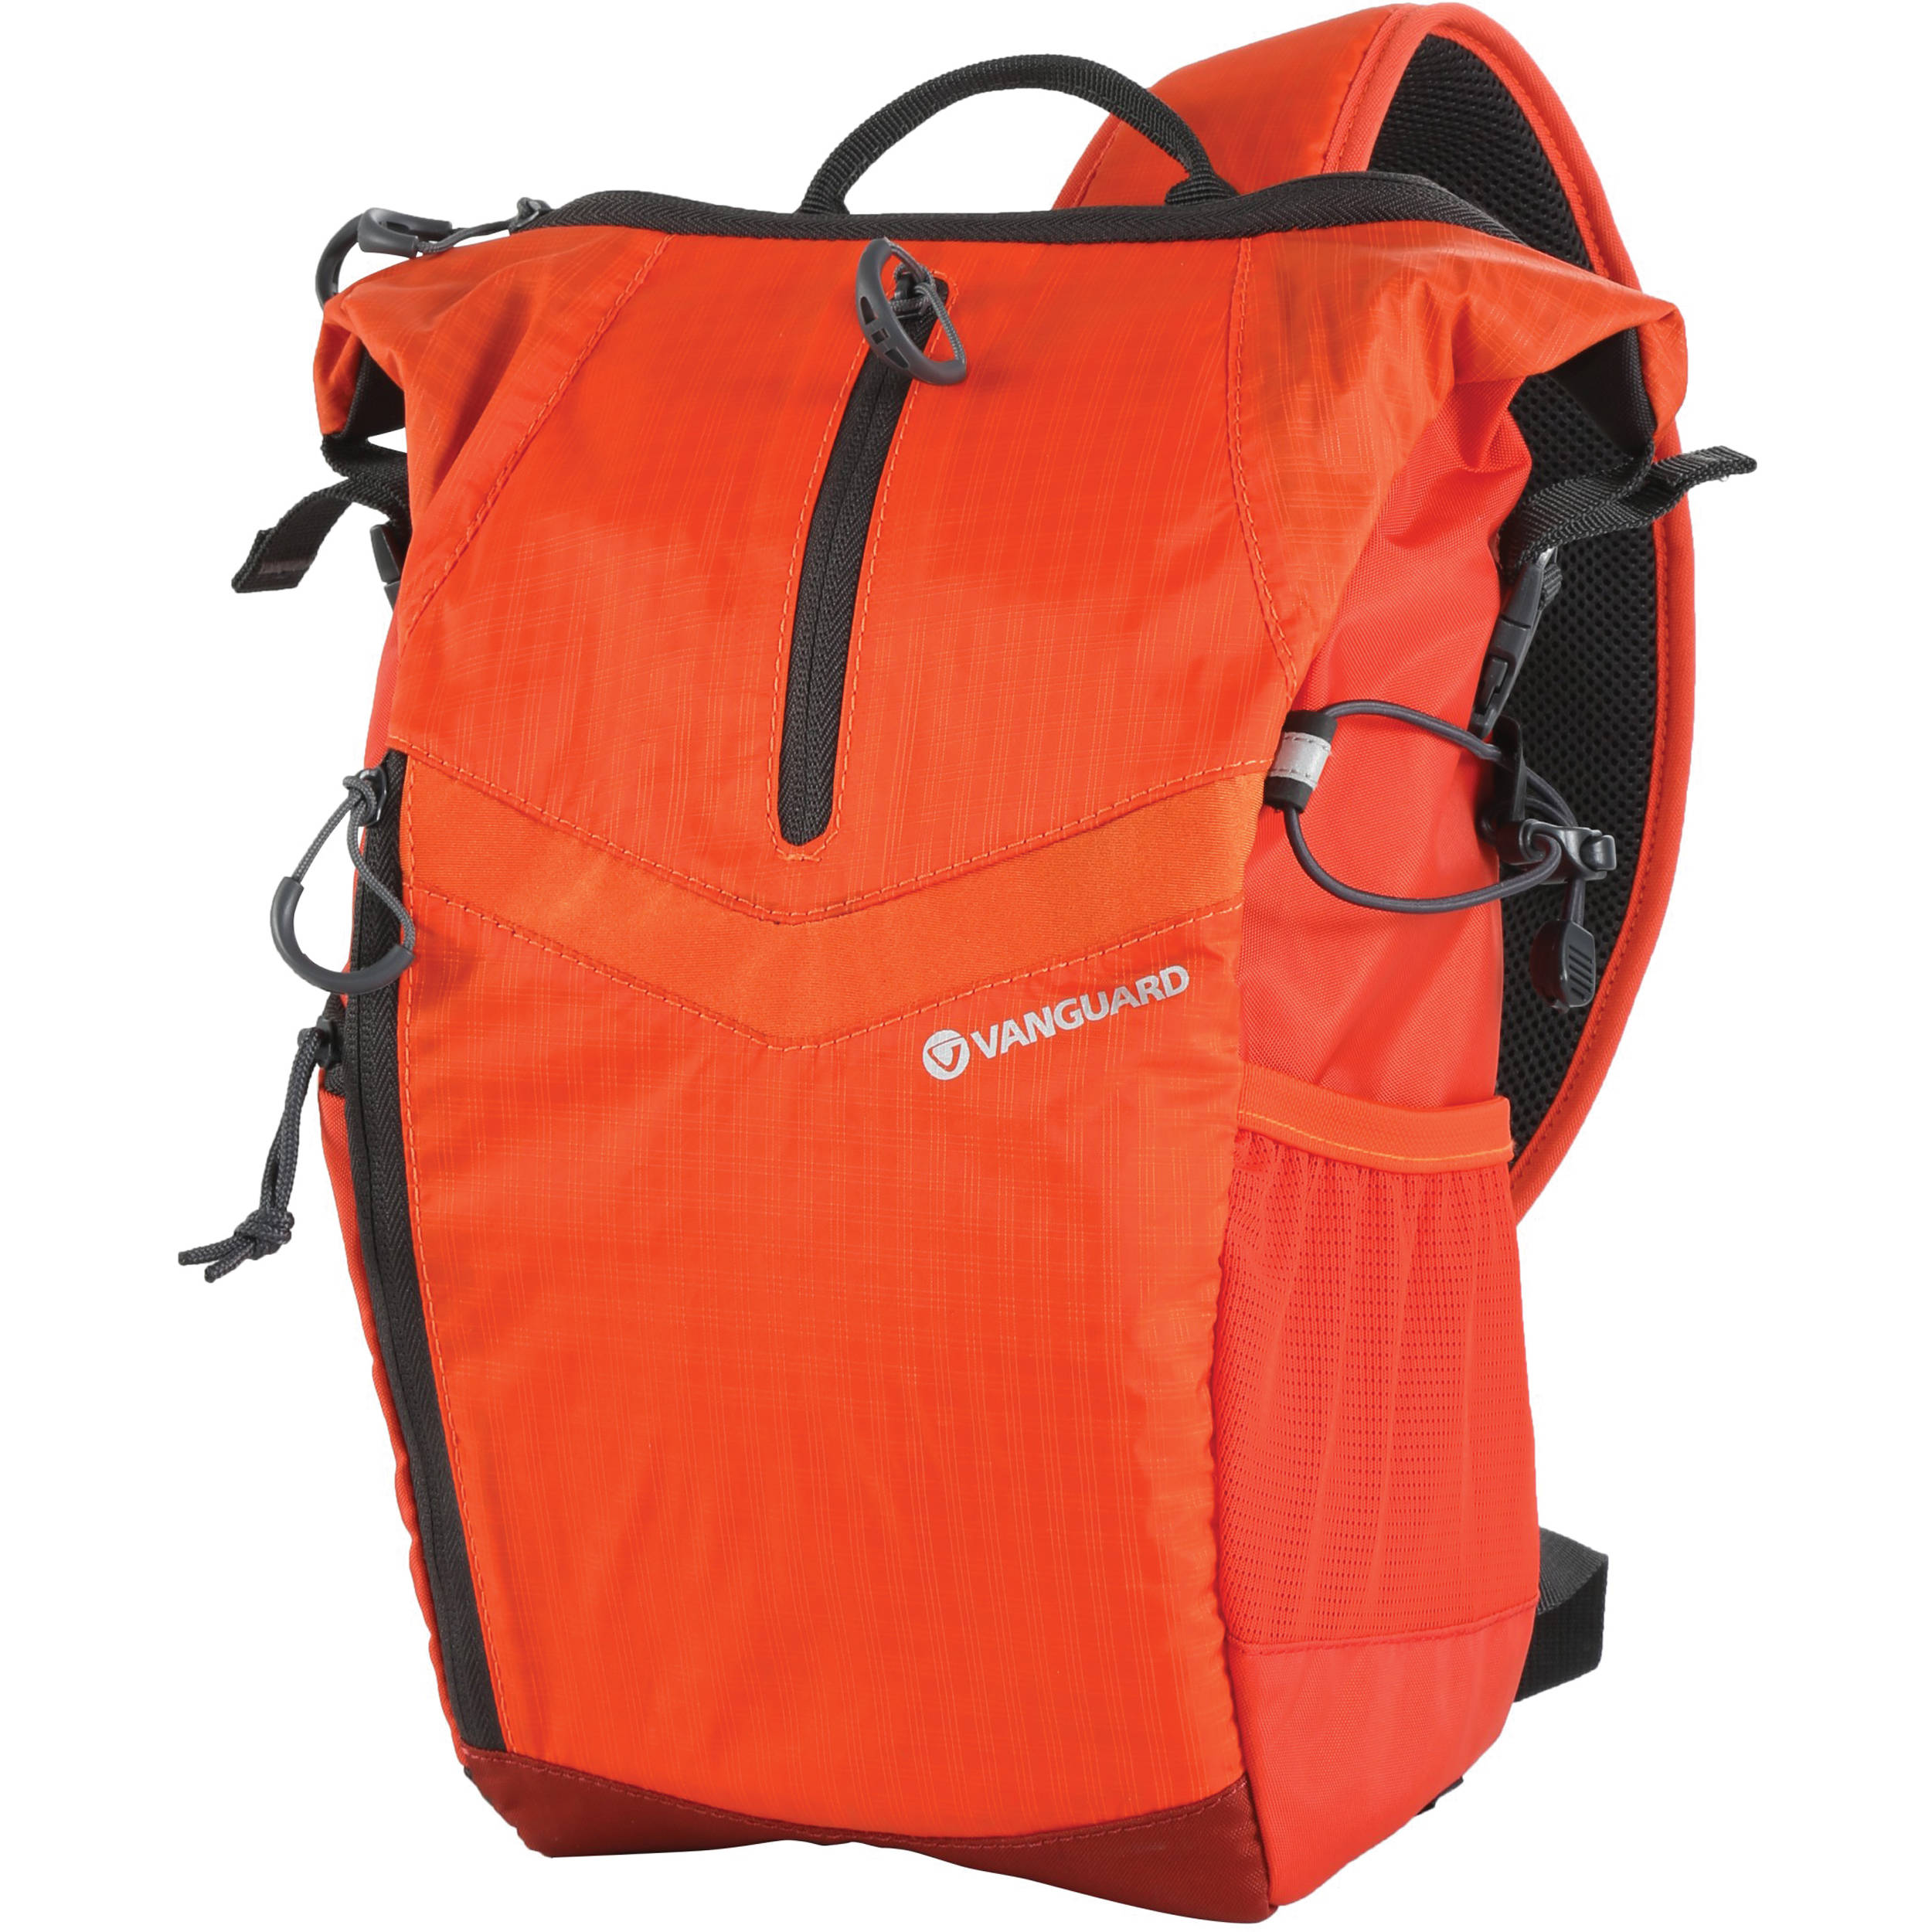 Vanguard Reno 34 DSLR Sling Bag (Orange) RENO 34OR B&H Photo